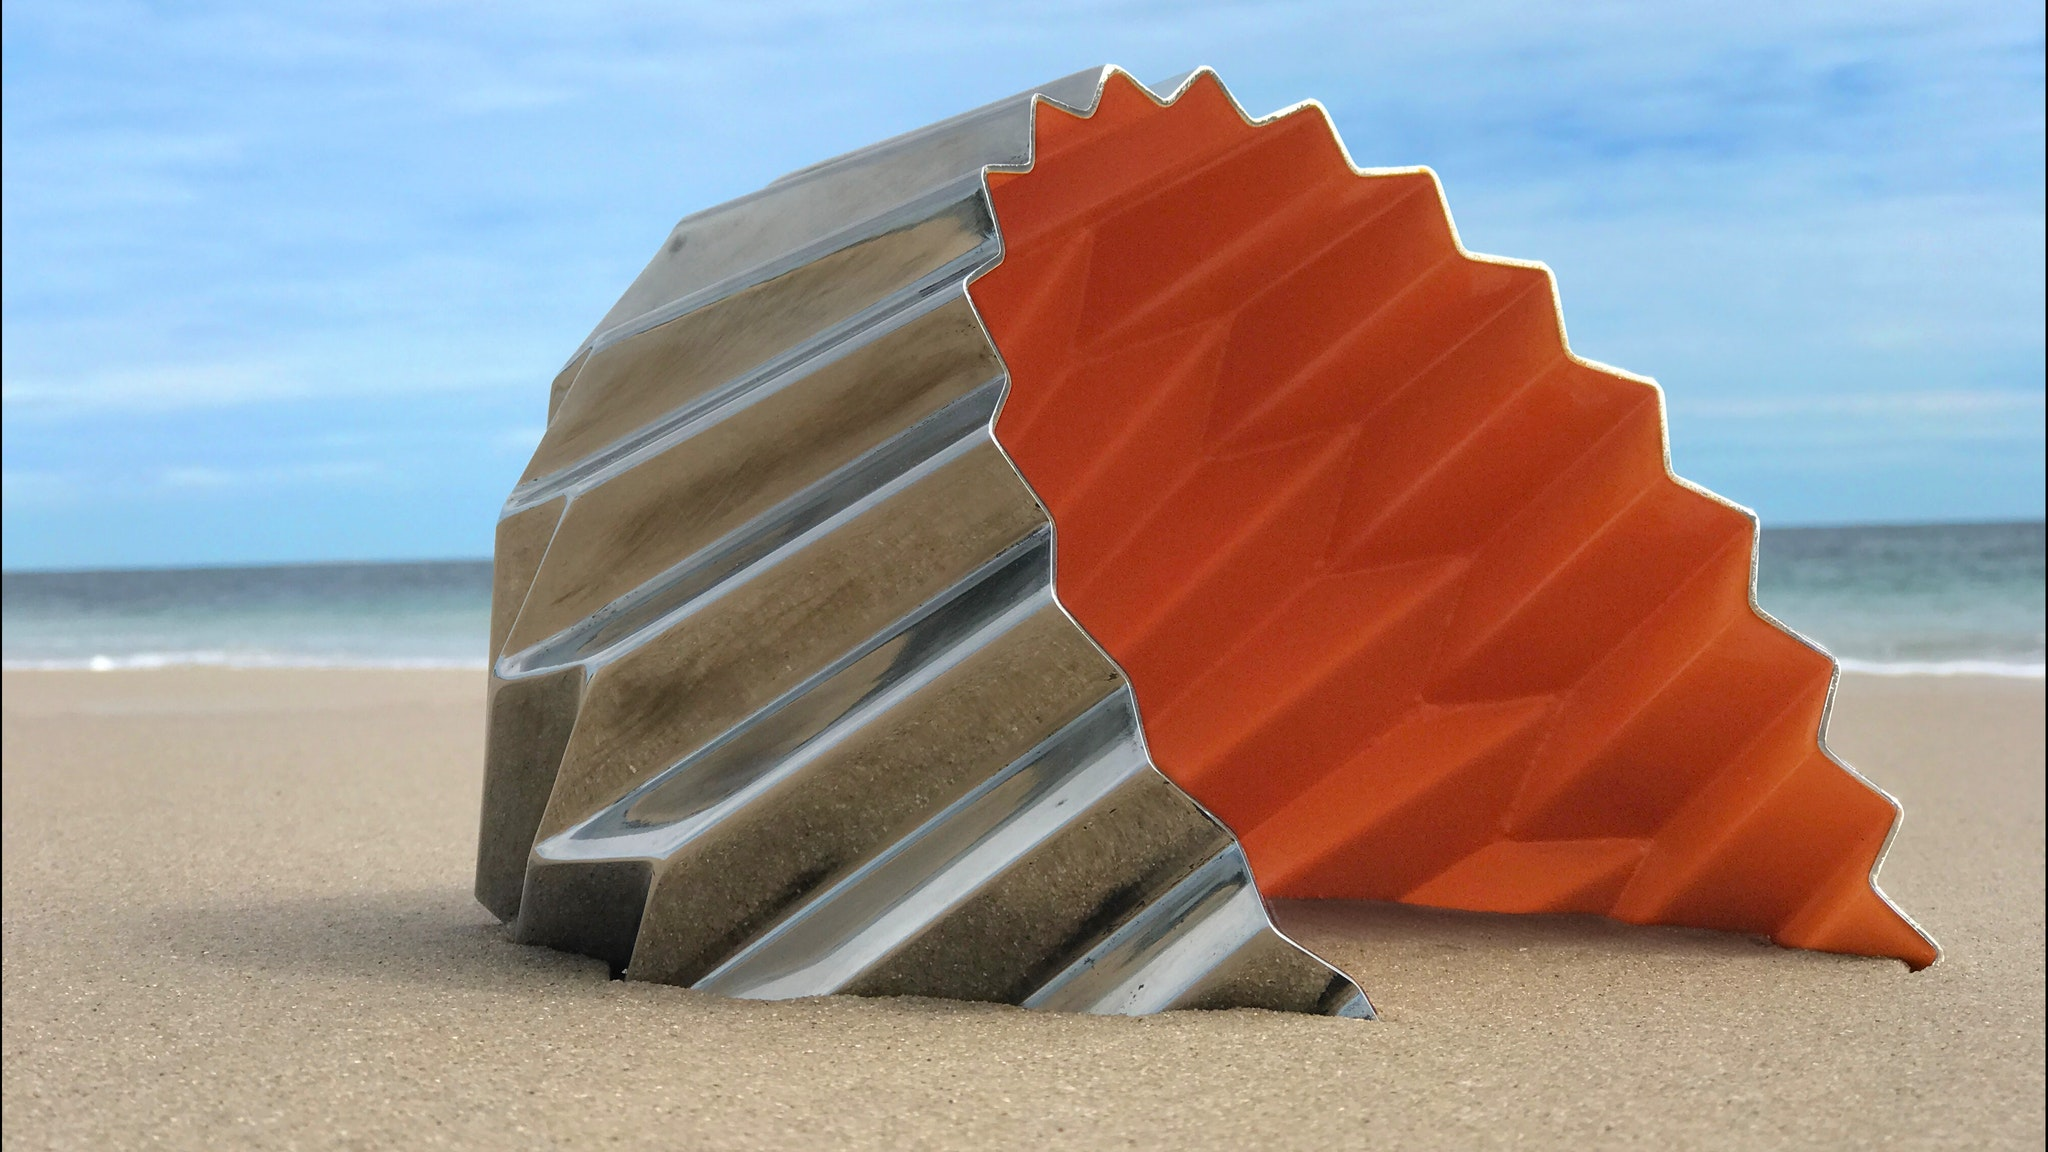 Stainless Steel sculpture created by Karl Meyer sits on the Lorne foreshore.